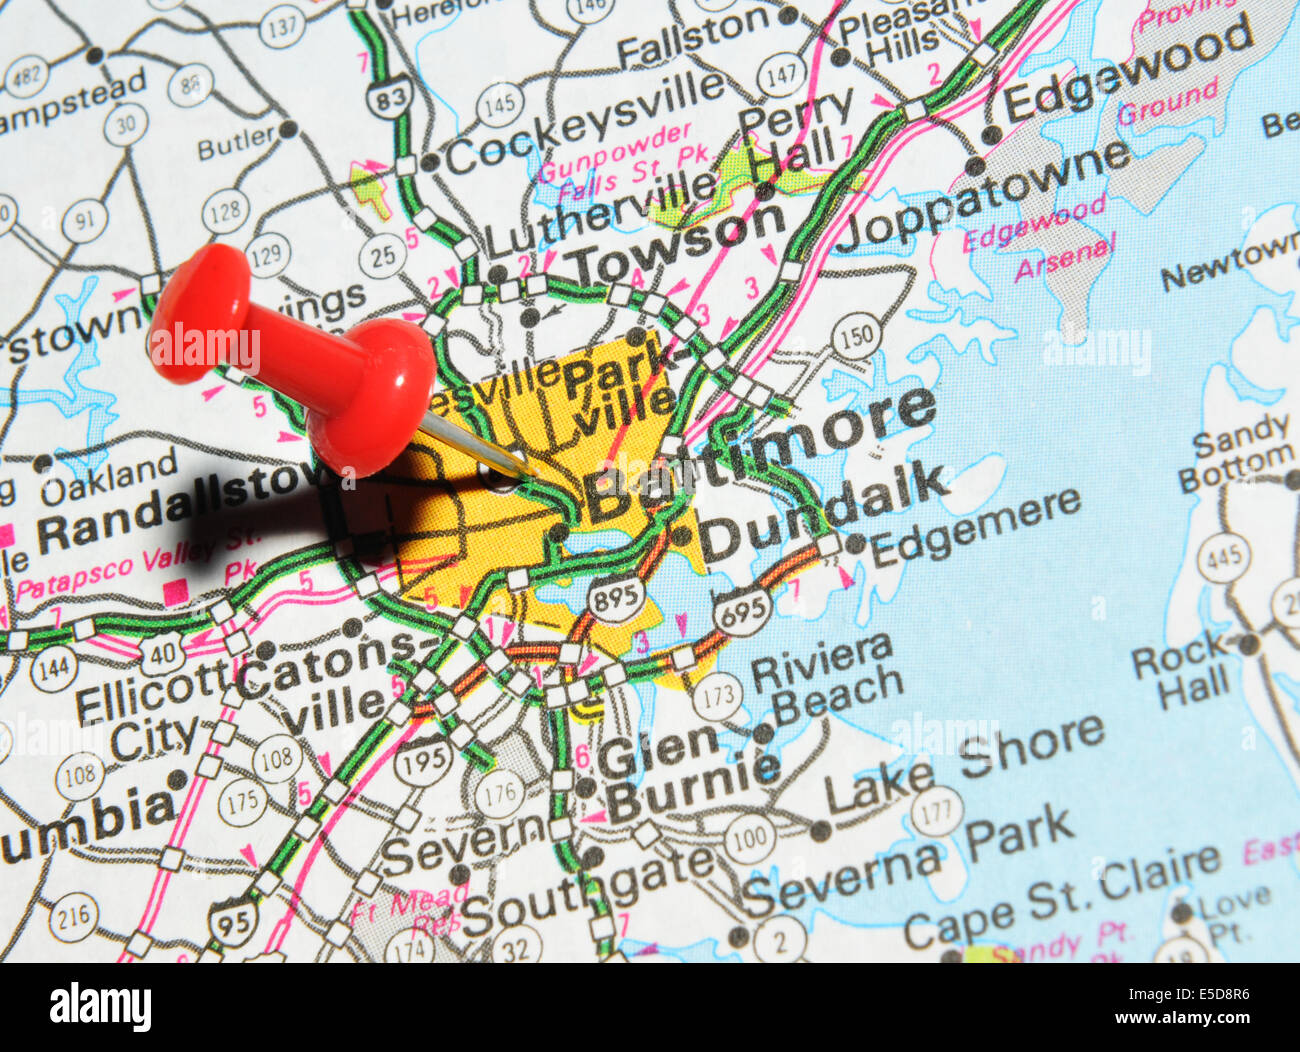 Baltimore On Map Baltimore on US map Stock Photo: 72207050   Alamy